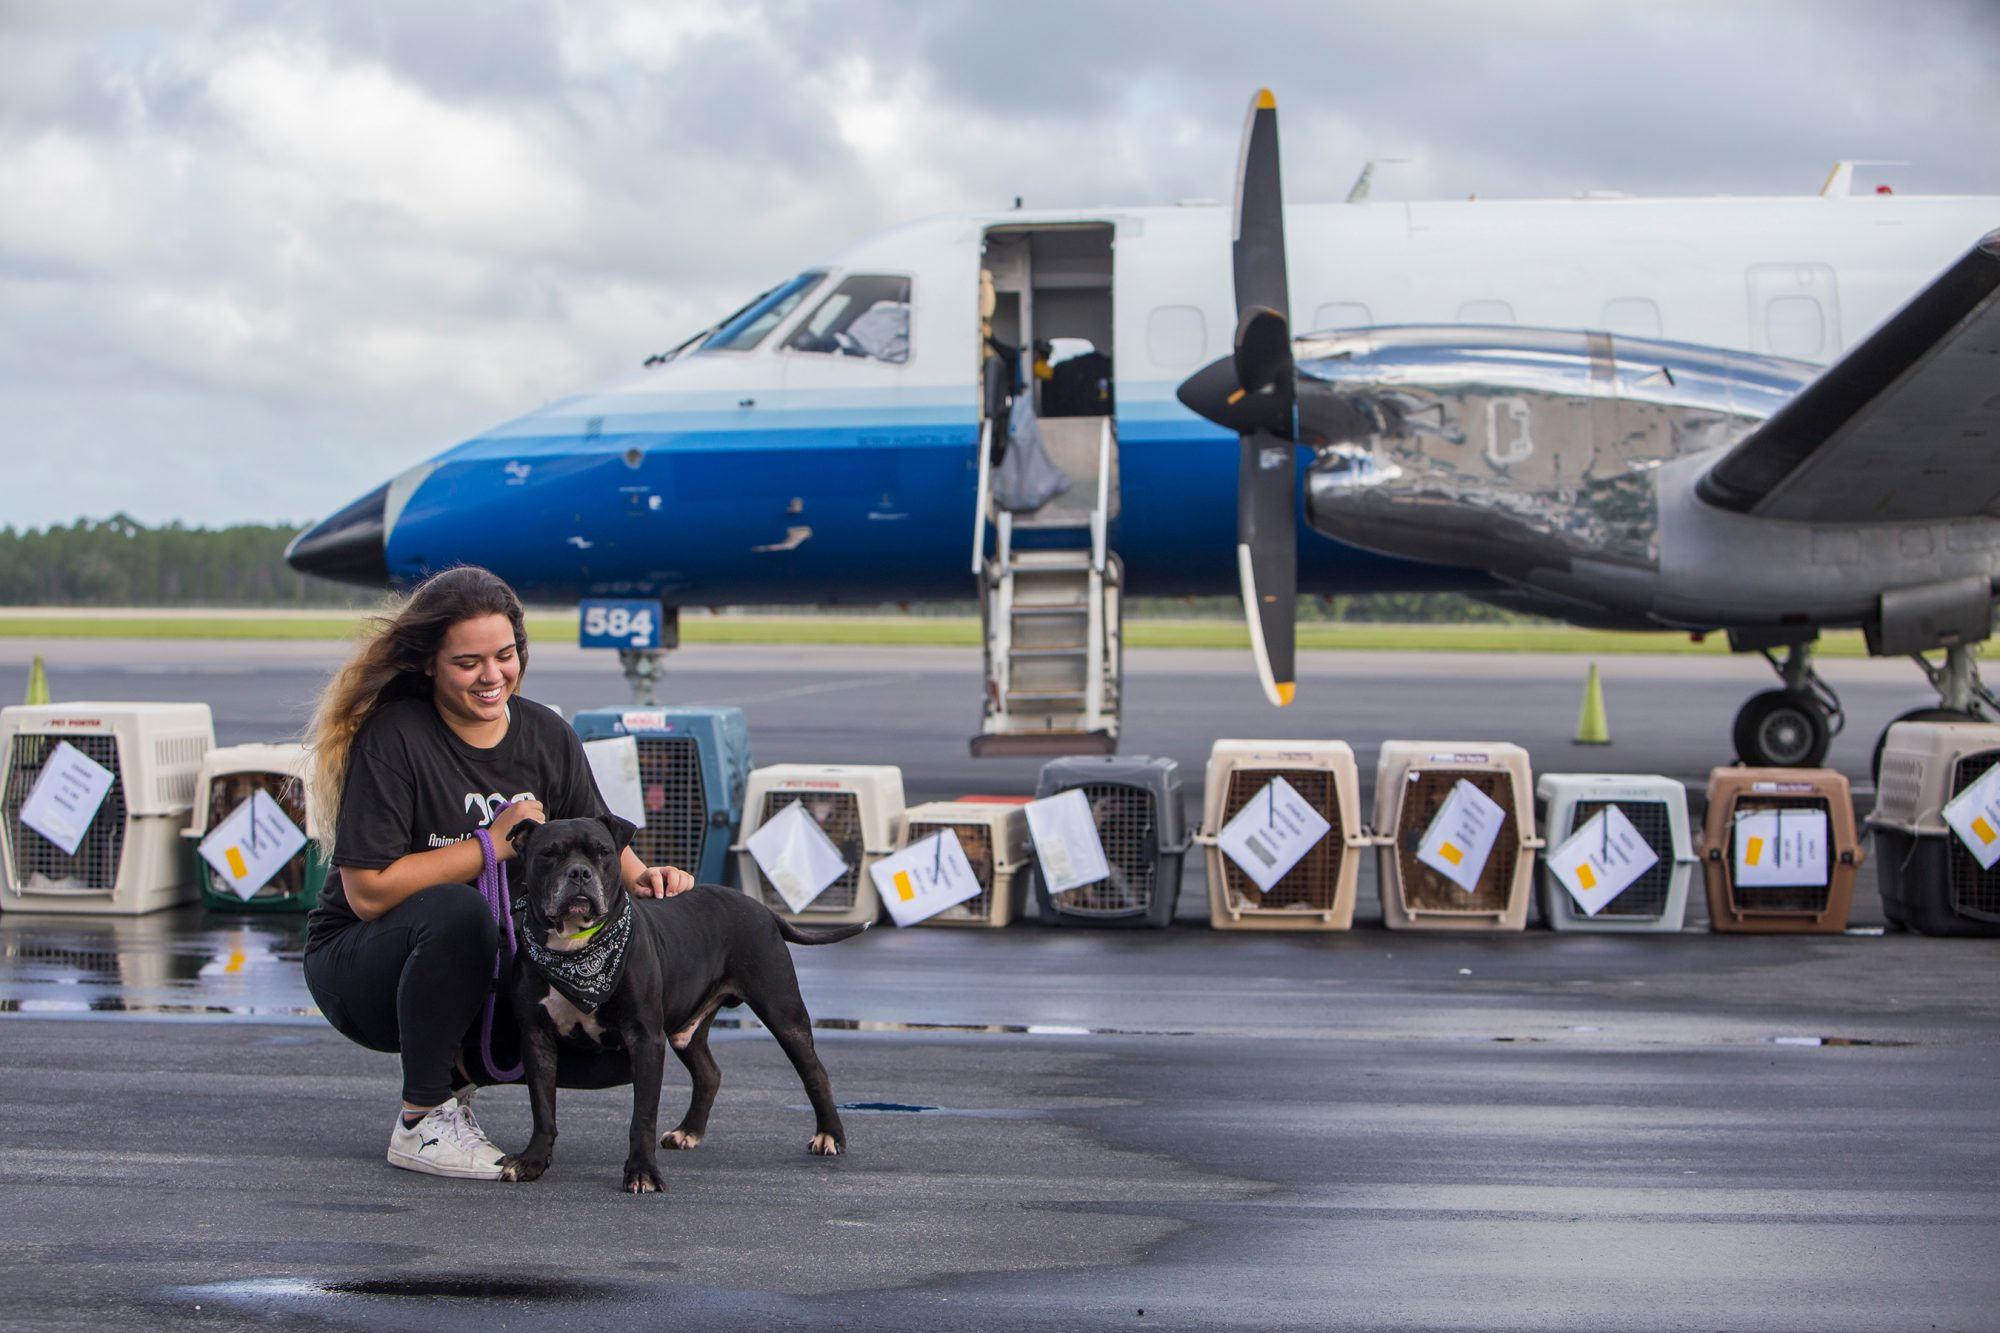 The Humane Society of the United States funded a rescue flight of 80 animals from 3 Florida shelters along the east coast, Jacksonville Animal Care & Protective Services, St Johns County Pet Center and Nassau Humane Society.